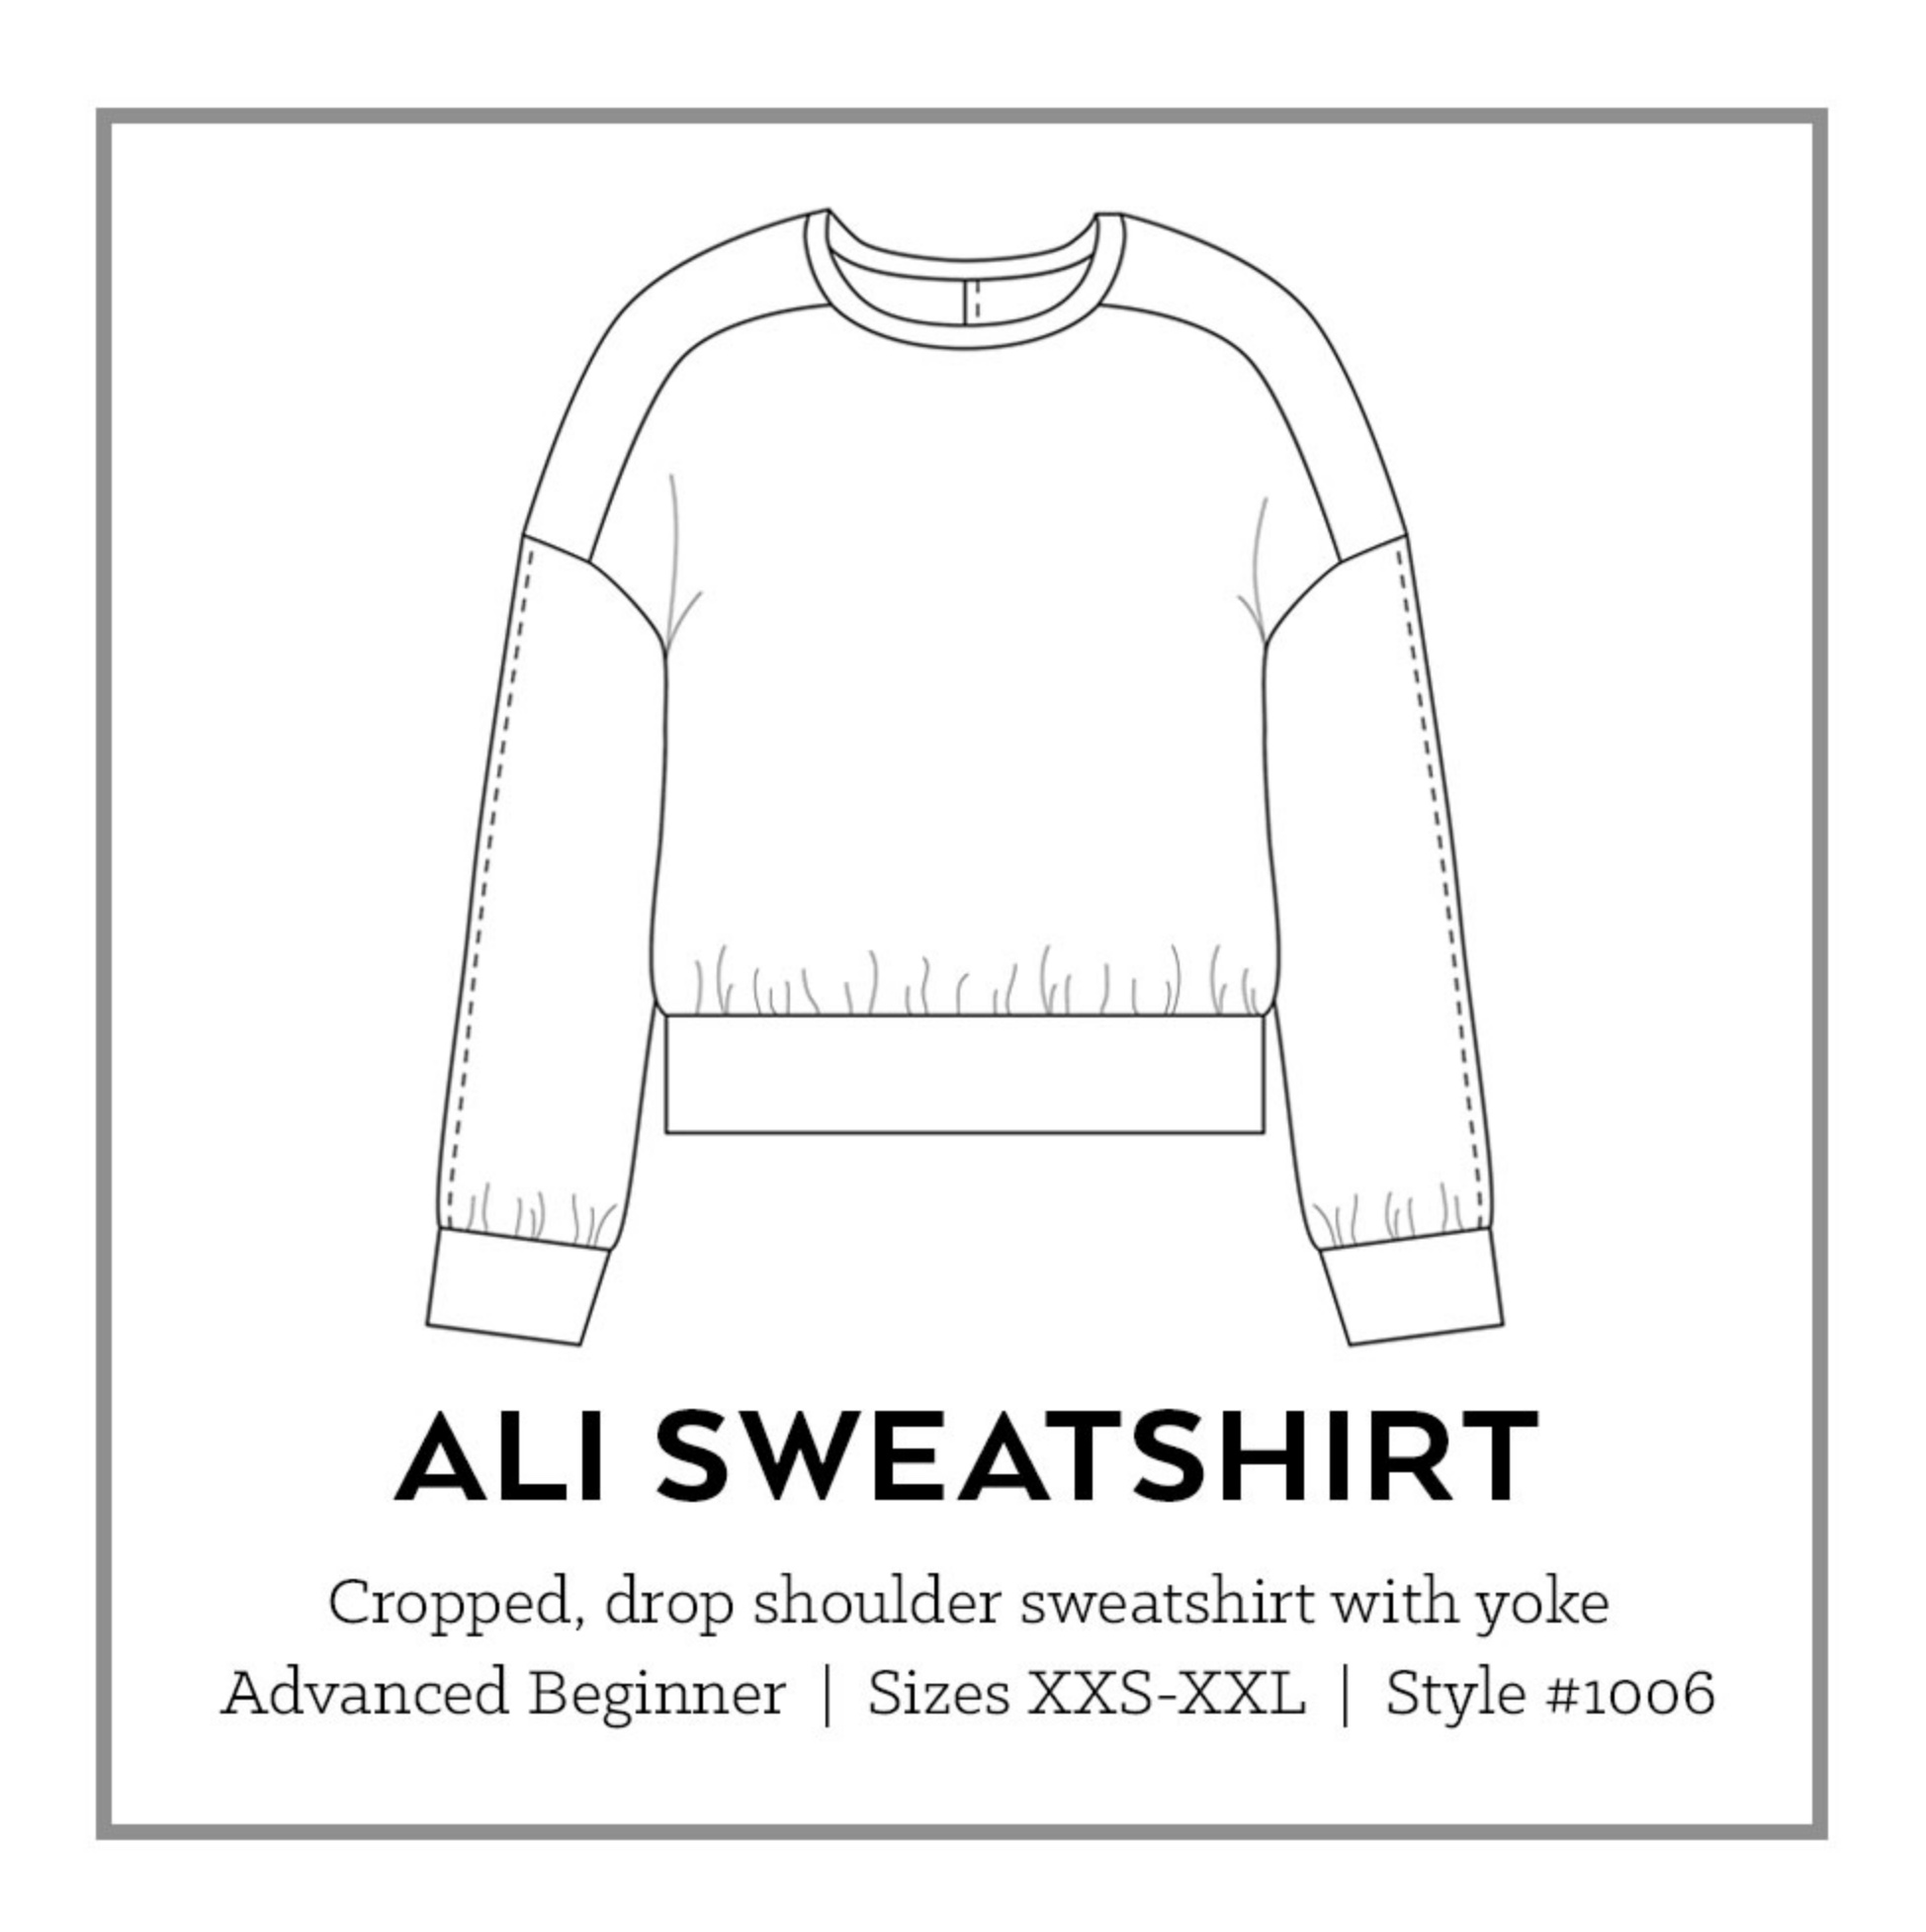 Ali sweatshirt from Sew DIY